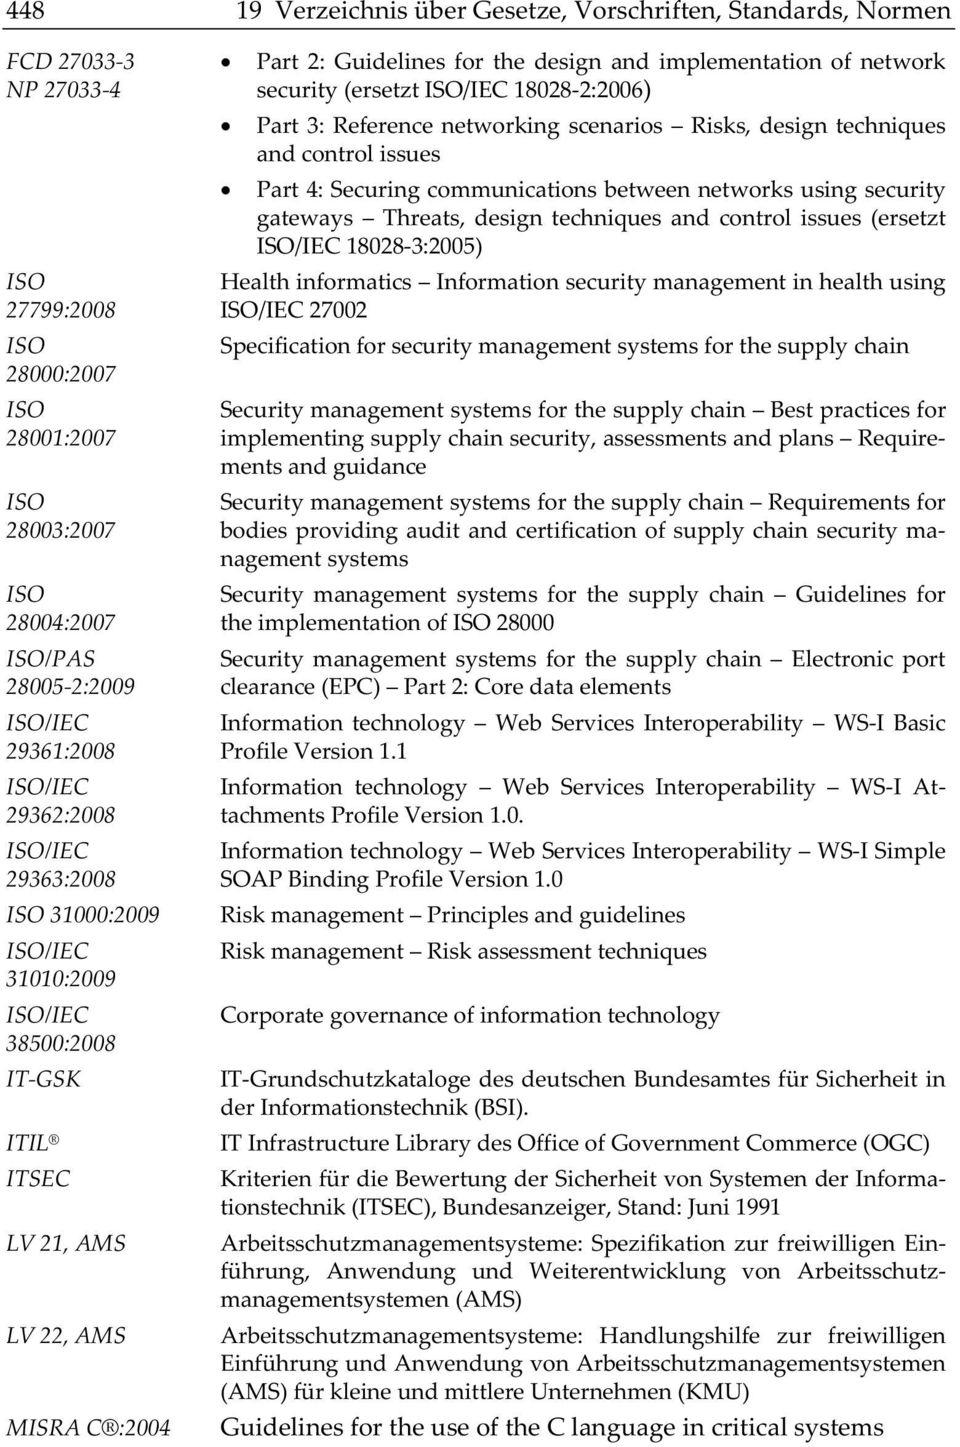 security(ersetztiso/iec180282:2006) Part3:Referencenetworkingscenarios Risks,designtechniques andcontrolissues Part4:Securingcommunicationsbetweennetworksusingsecurity gateways Threats, design